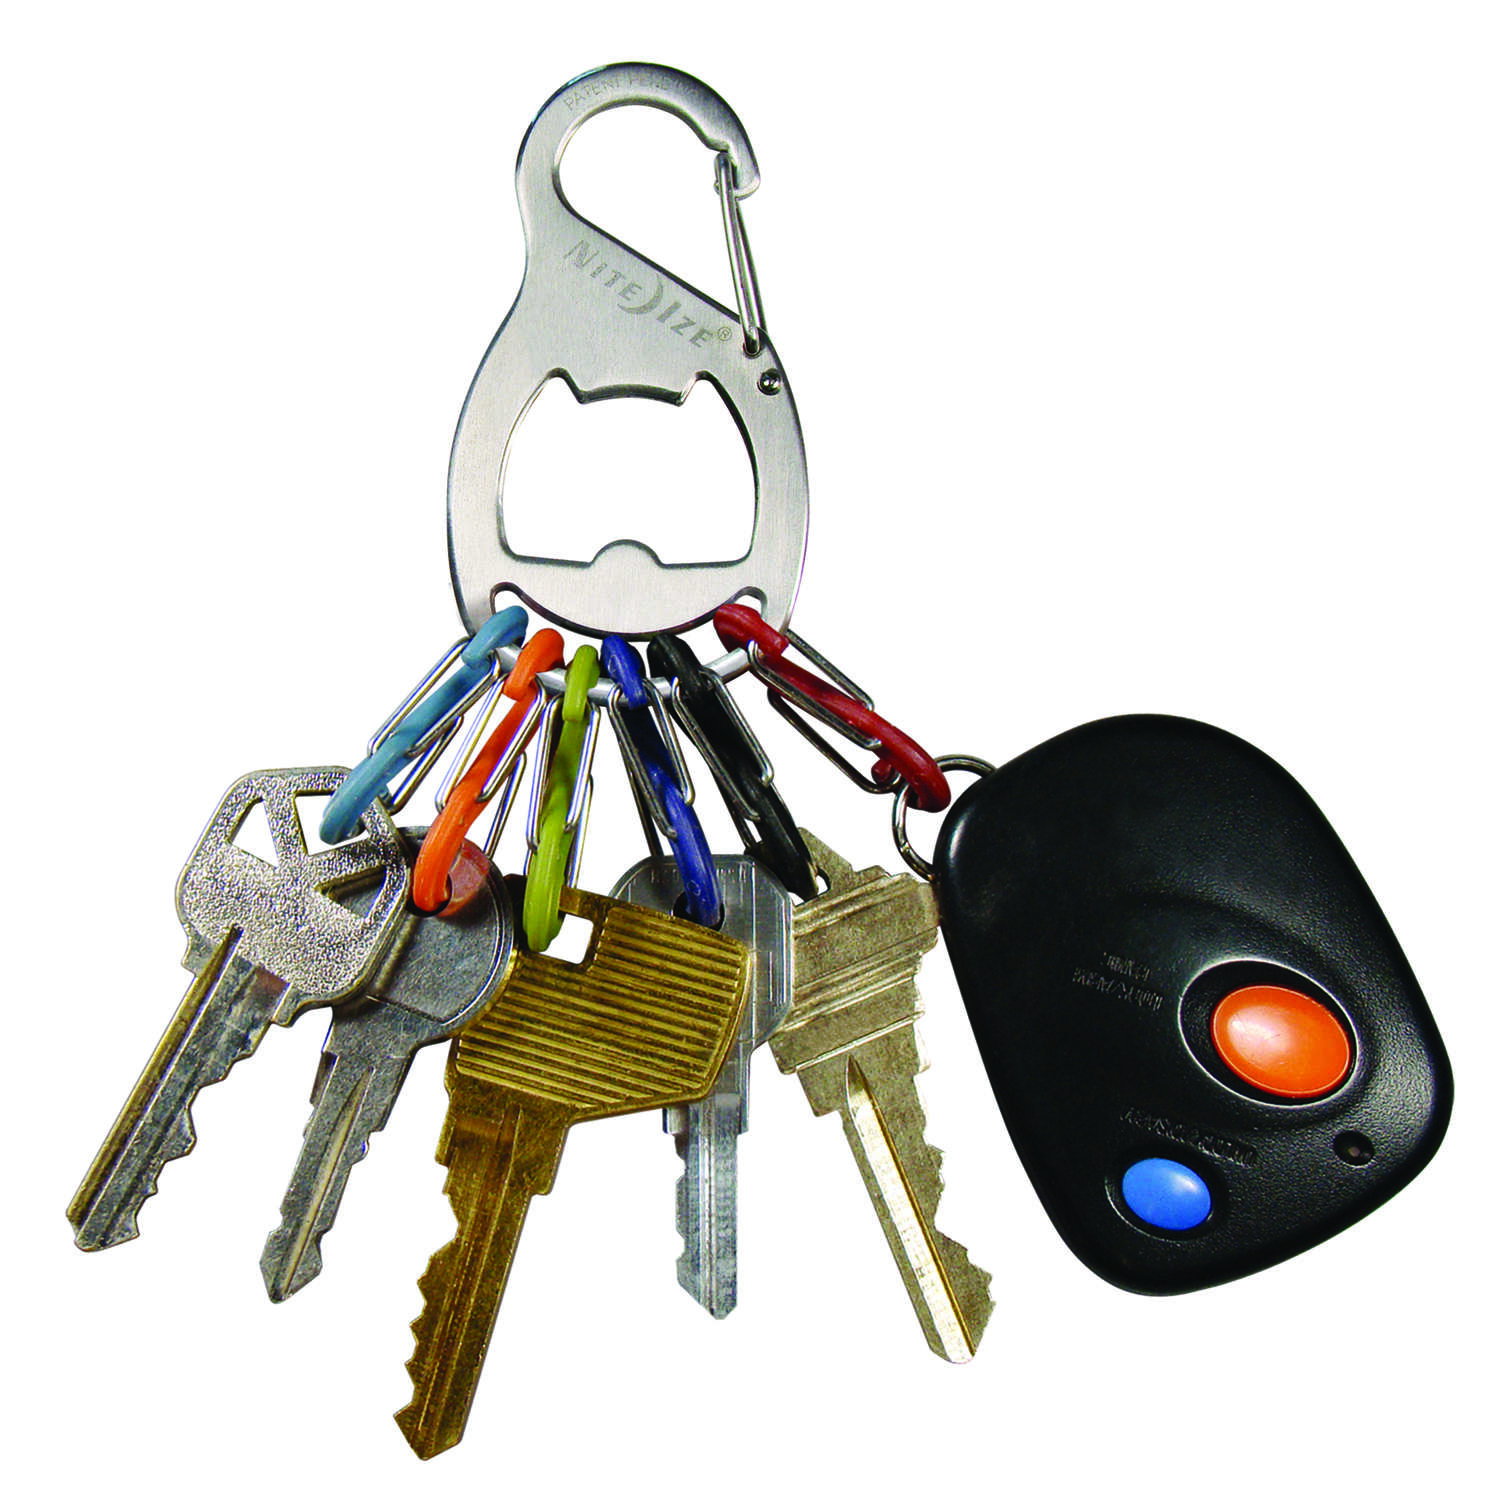 Nite Ize  Key Rack  2.1 in. Dia. Stainless Steel  Silver  KeyRack  Key Chain